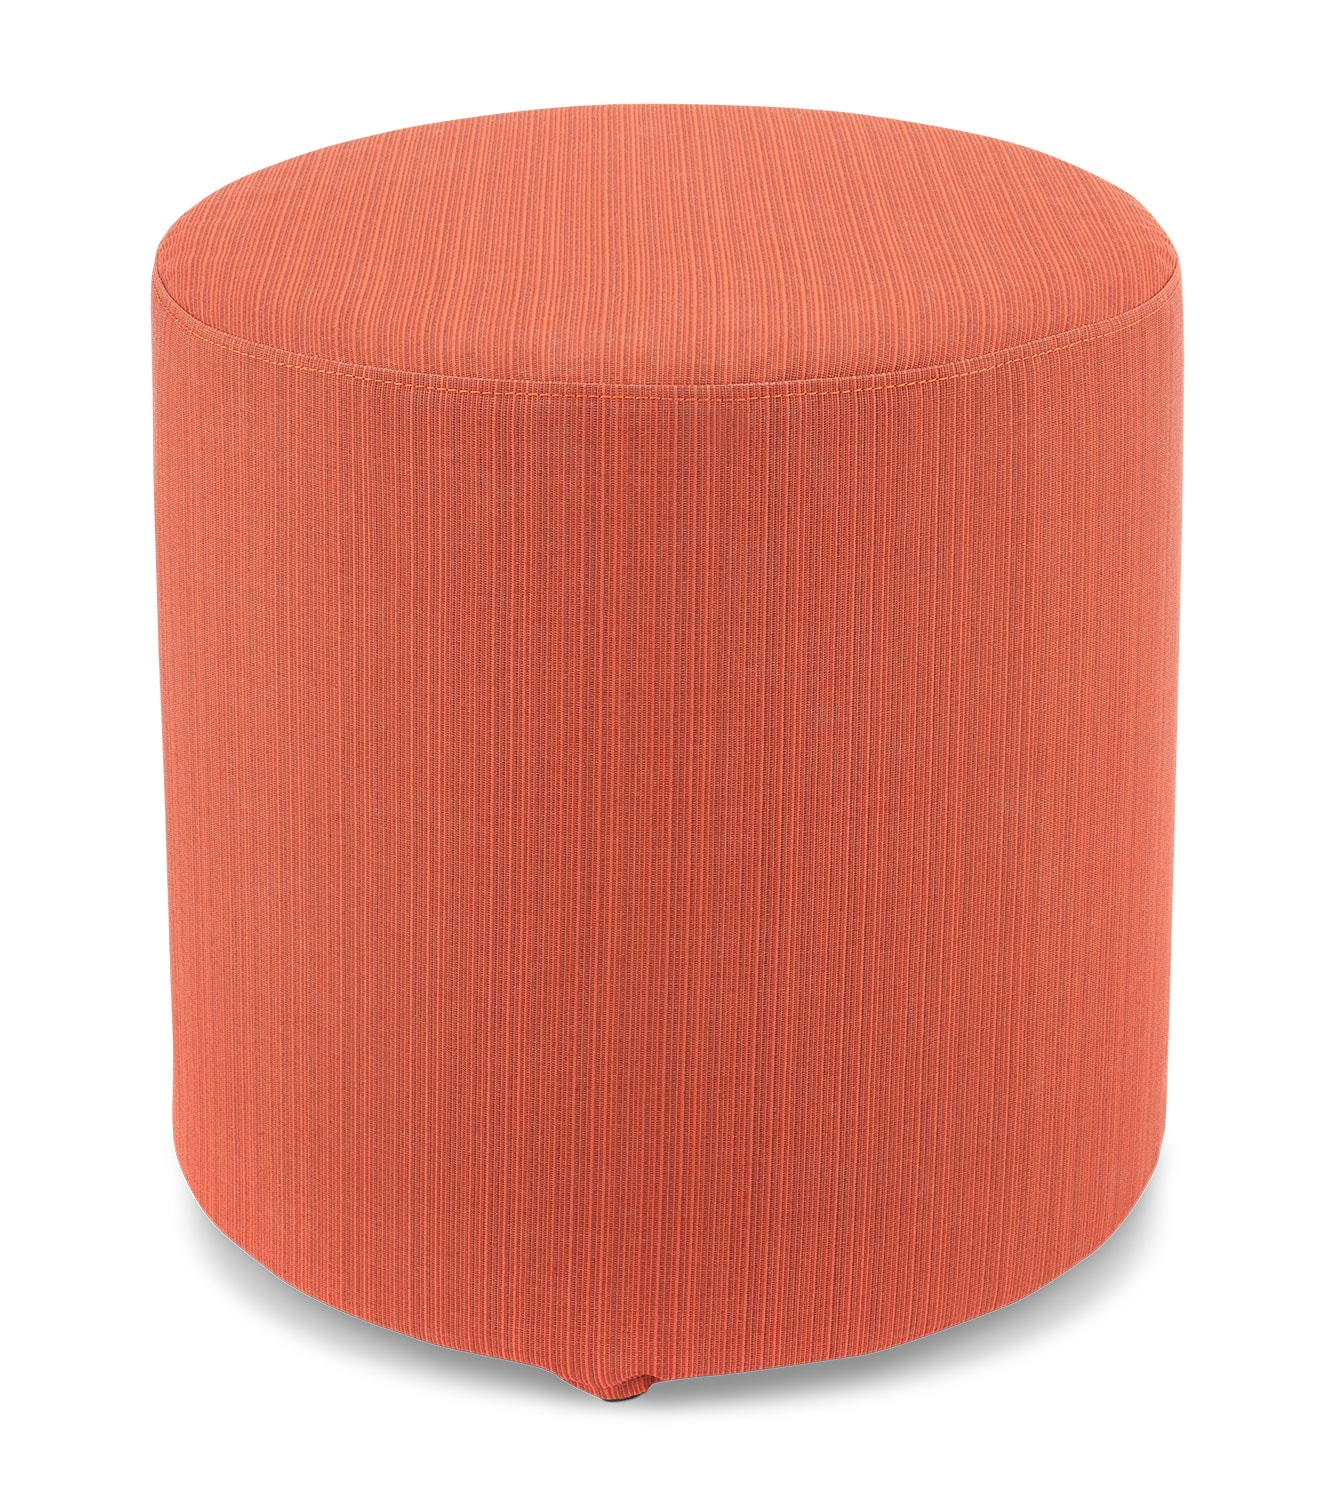 Outdoor Furniture - Renee Round Ottoman - Orange